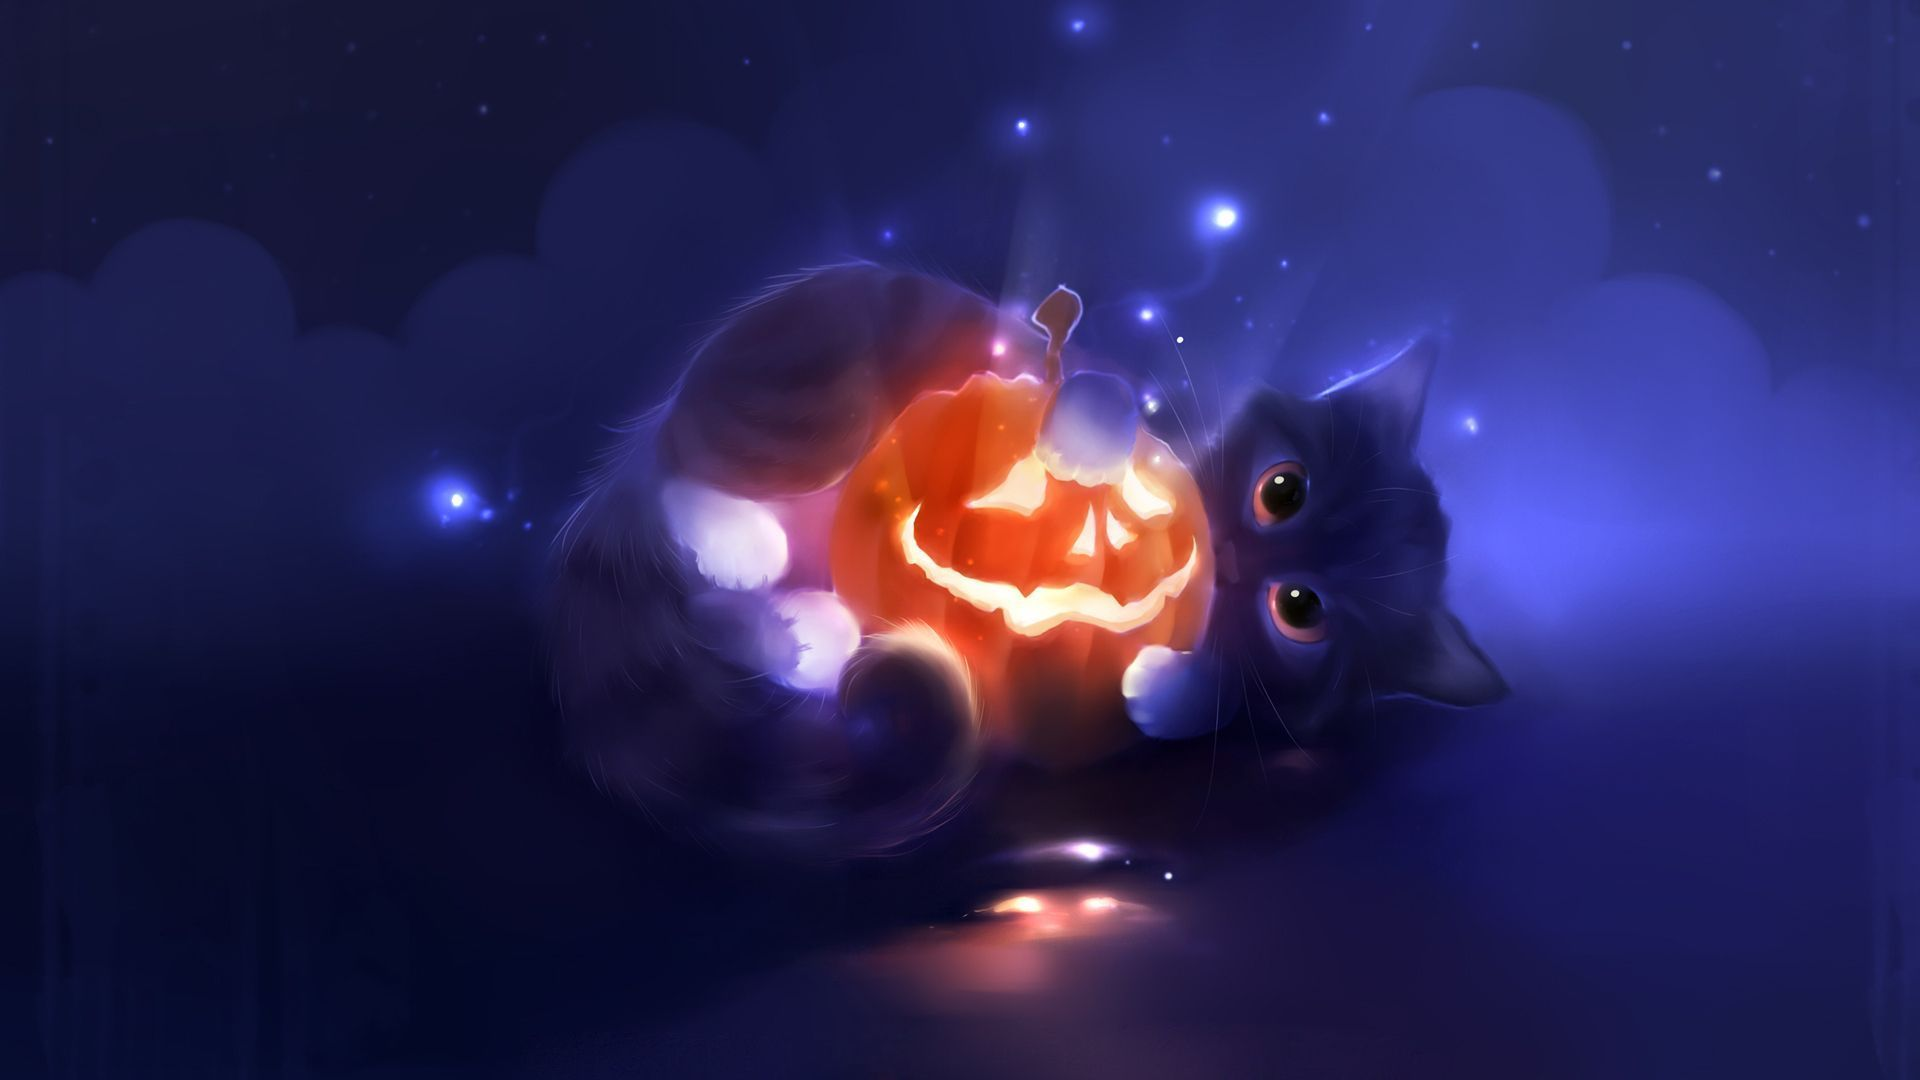 Great Wallpaper High Resolution Halloween - ed3137a5297da25356cc09ee1acb91b2  Pic_639128.jpg